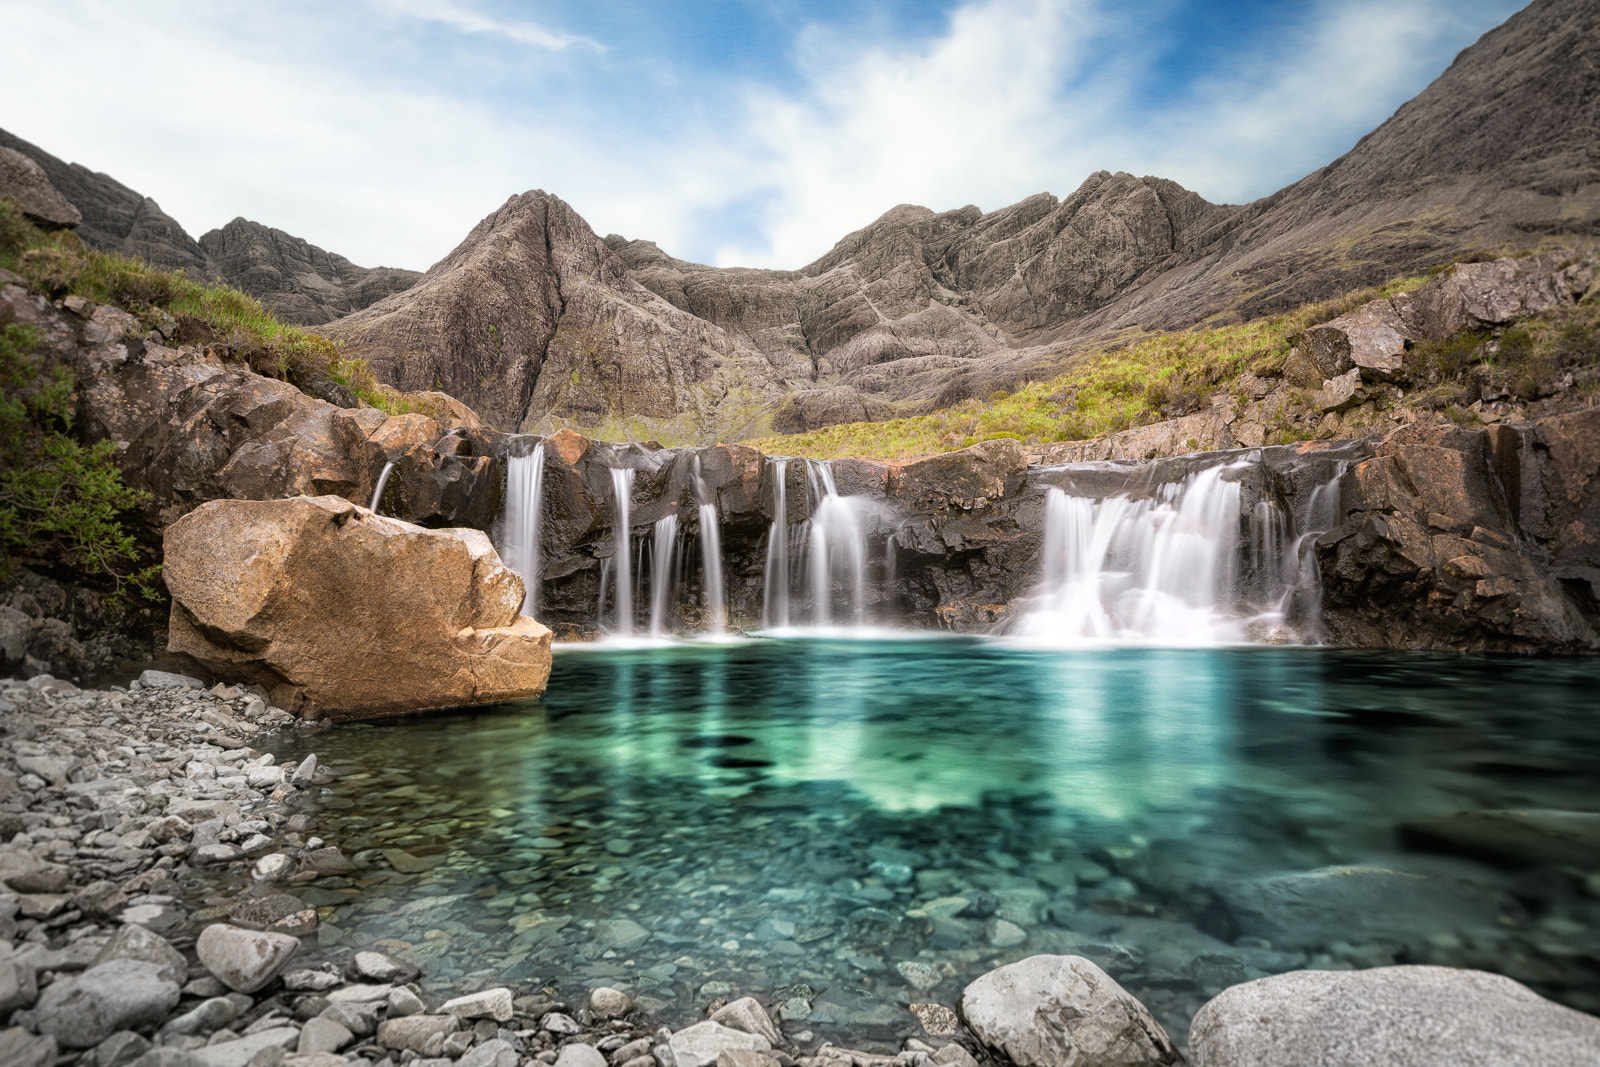 Photograph The Fairy Pools by Martin Müller on 500px